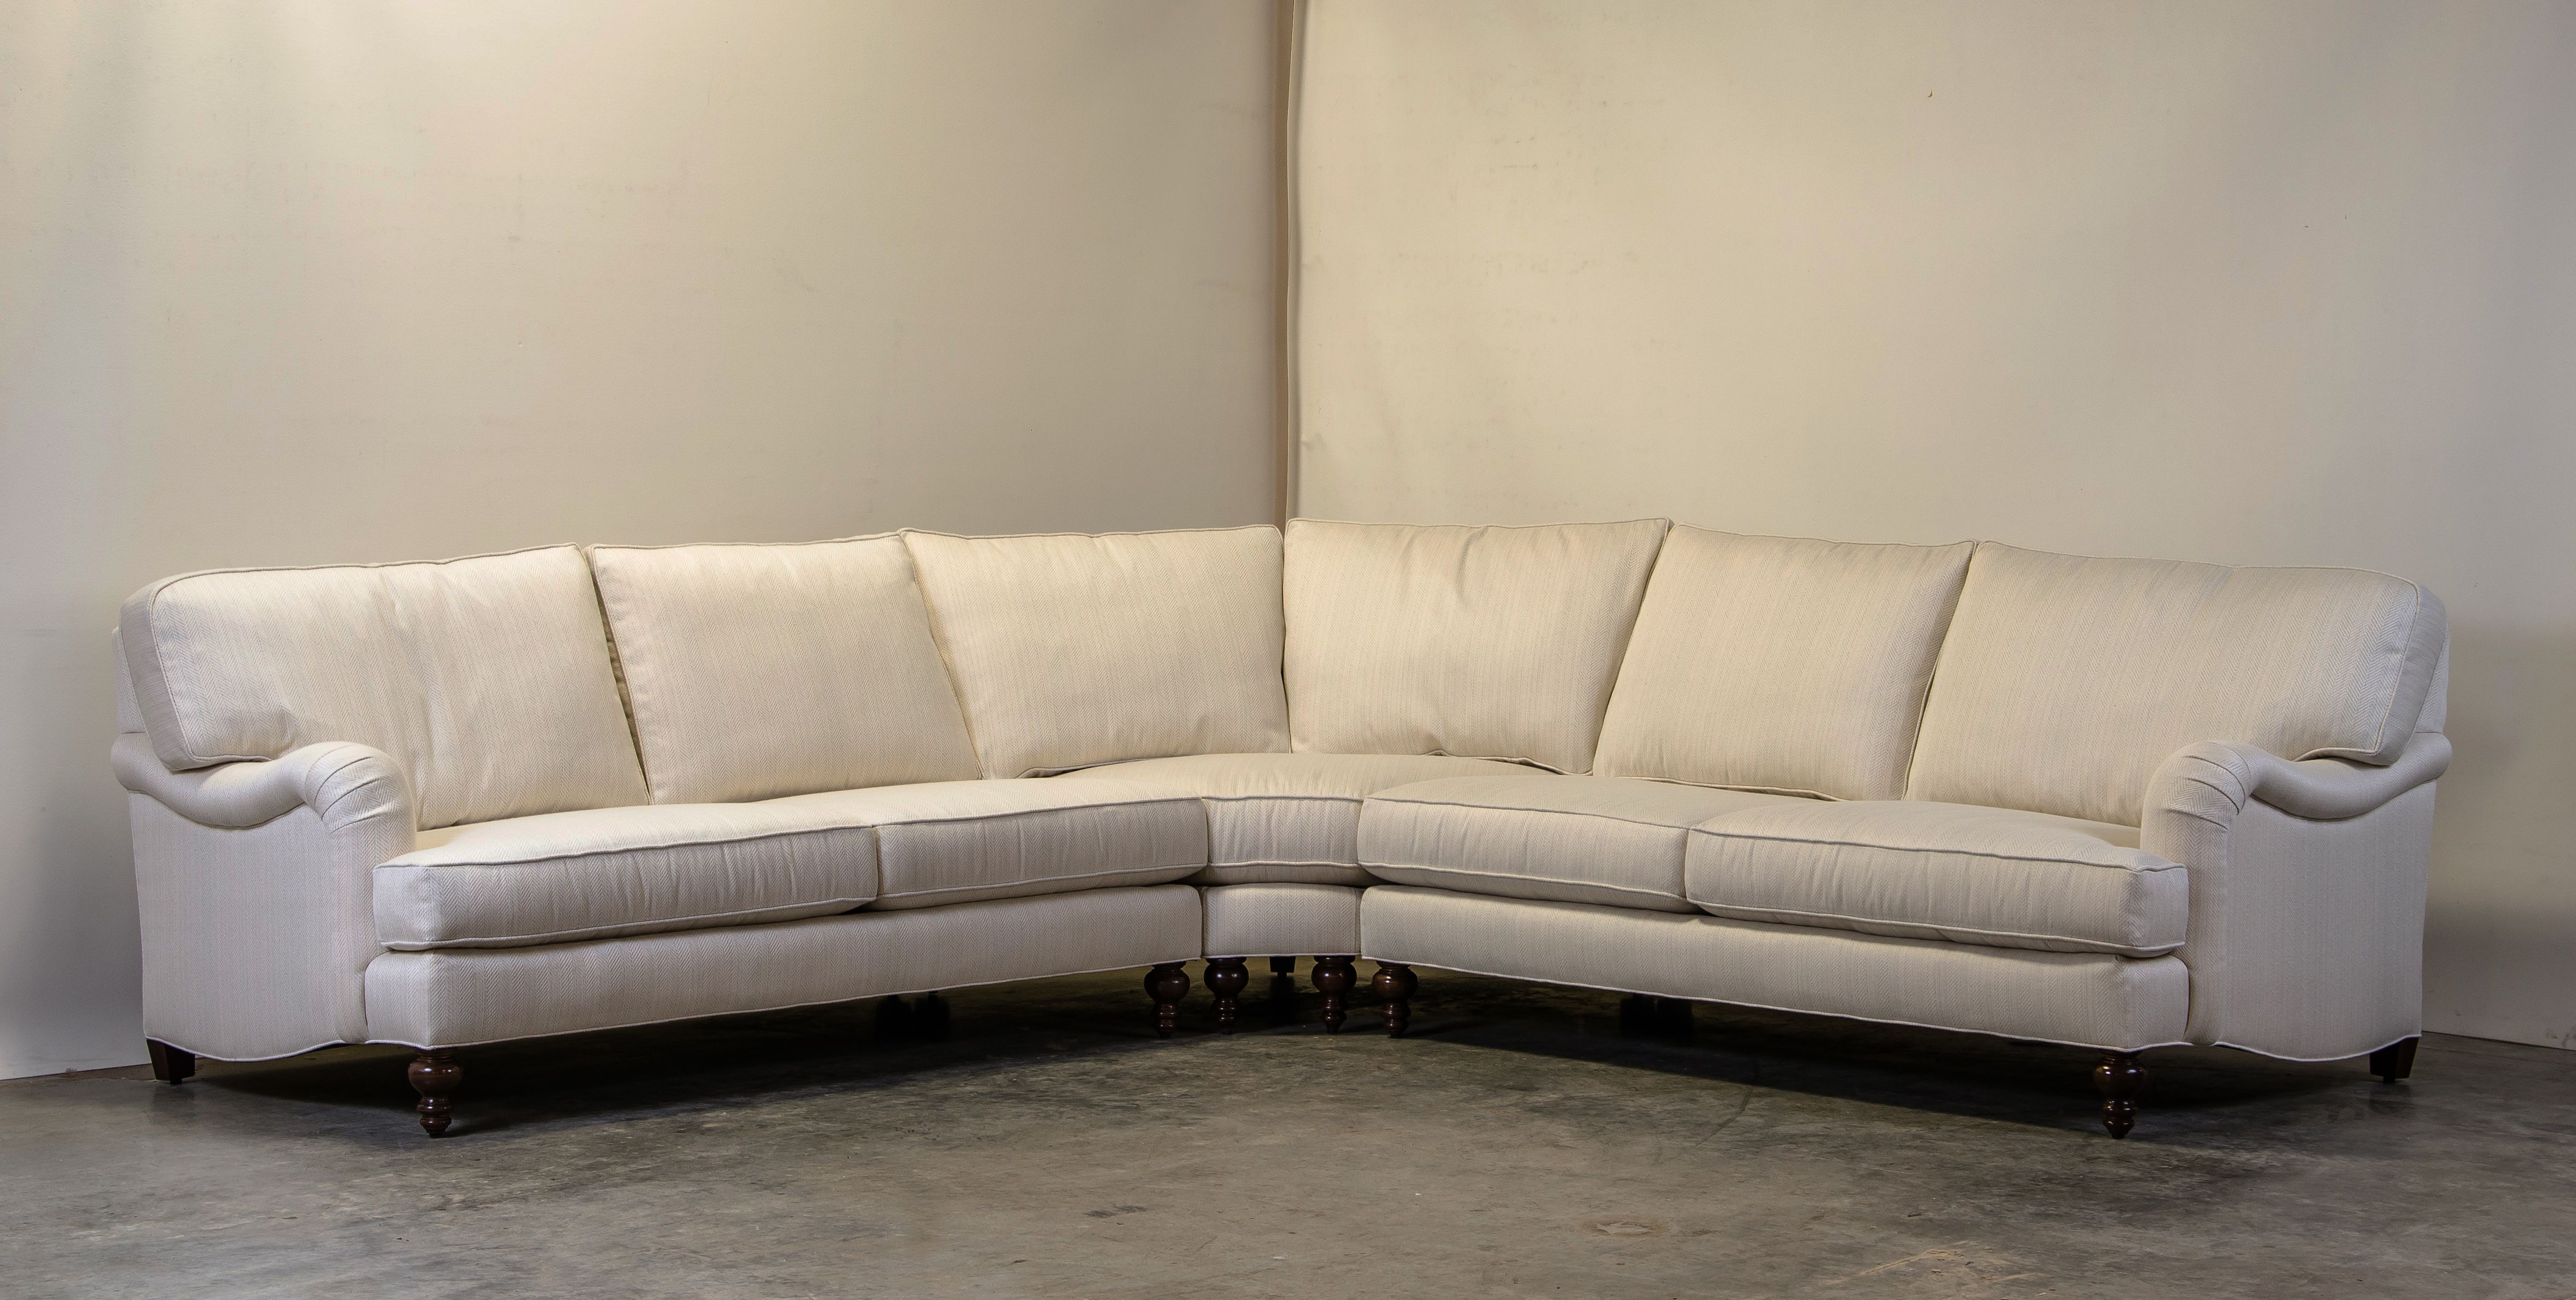 sunbrella sectional sofa indoor modular furniture dune fabric